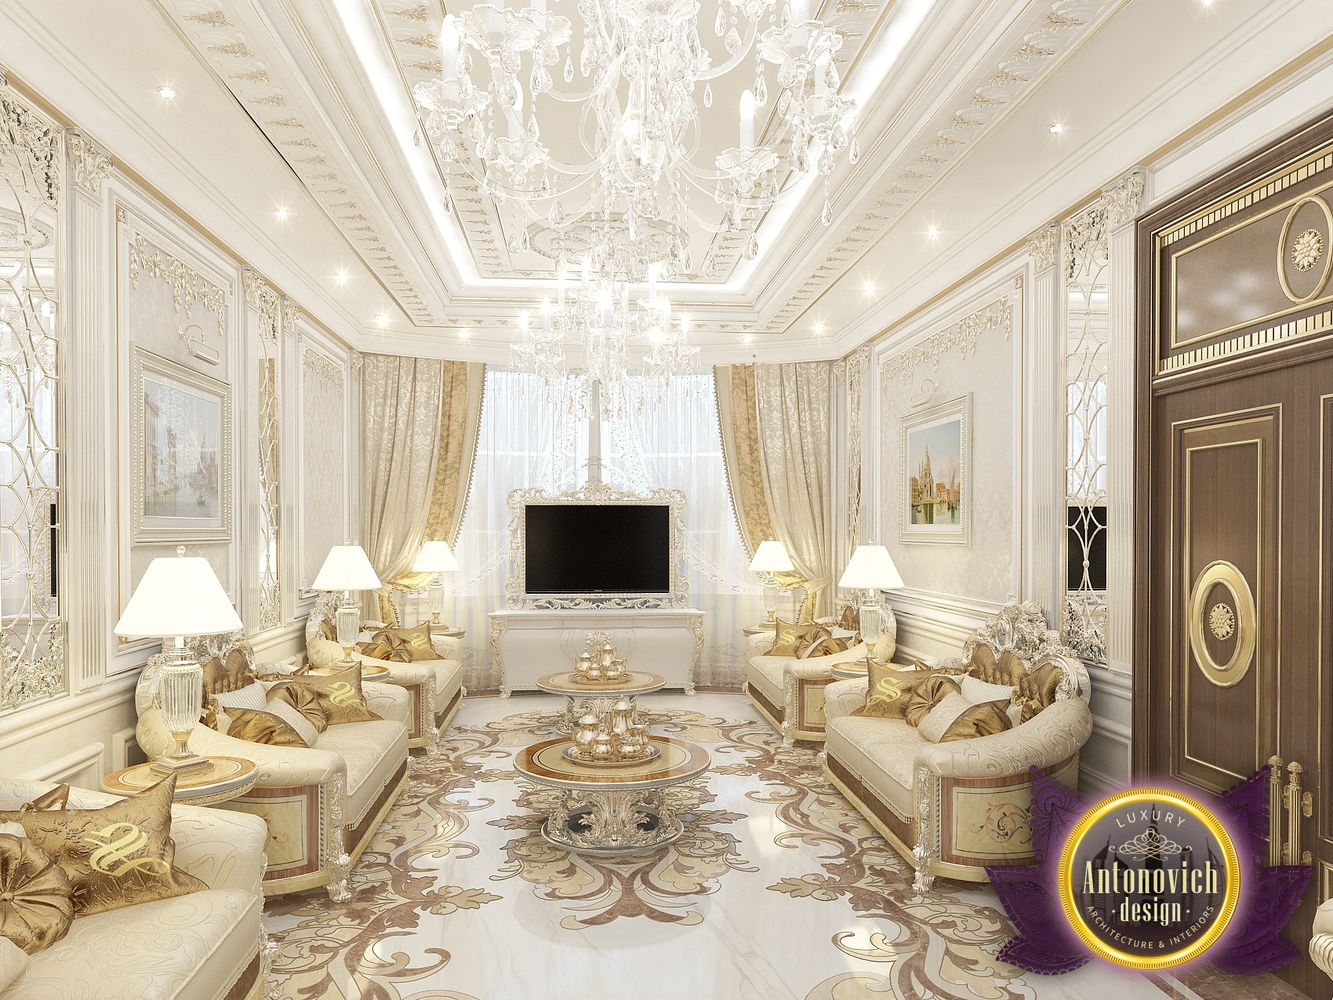 Luxury antonovich design uae living room interior design Interior sitting room